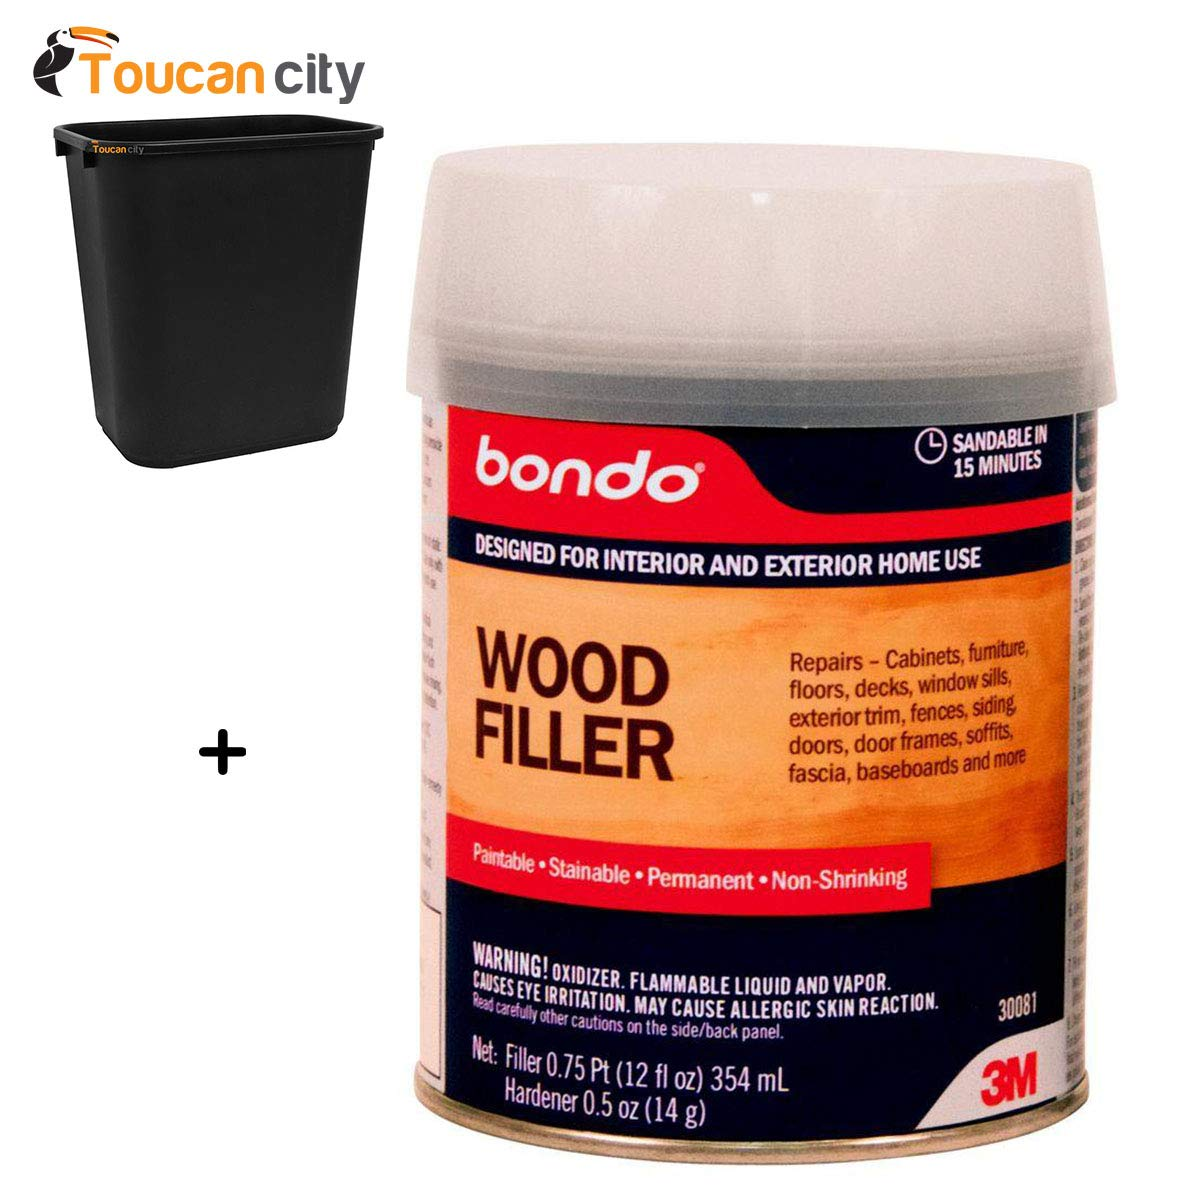 Toucan City 7 Gal Trash can and 3M Bondo 12 fl. oz. Wood Filler (Case of 4) 30081